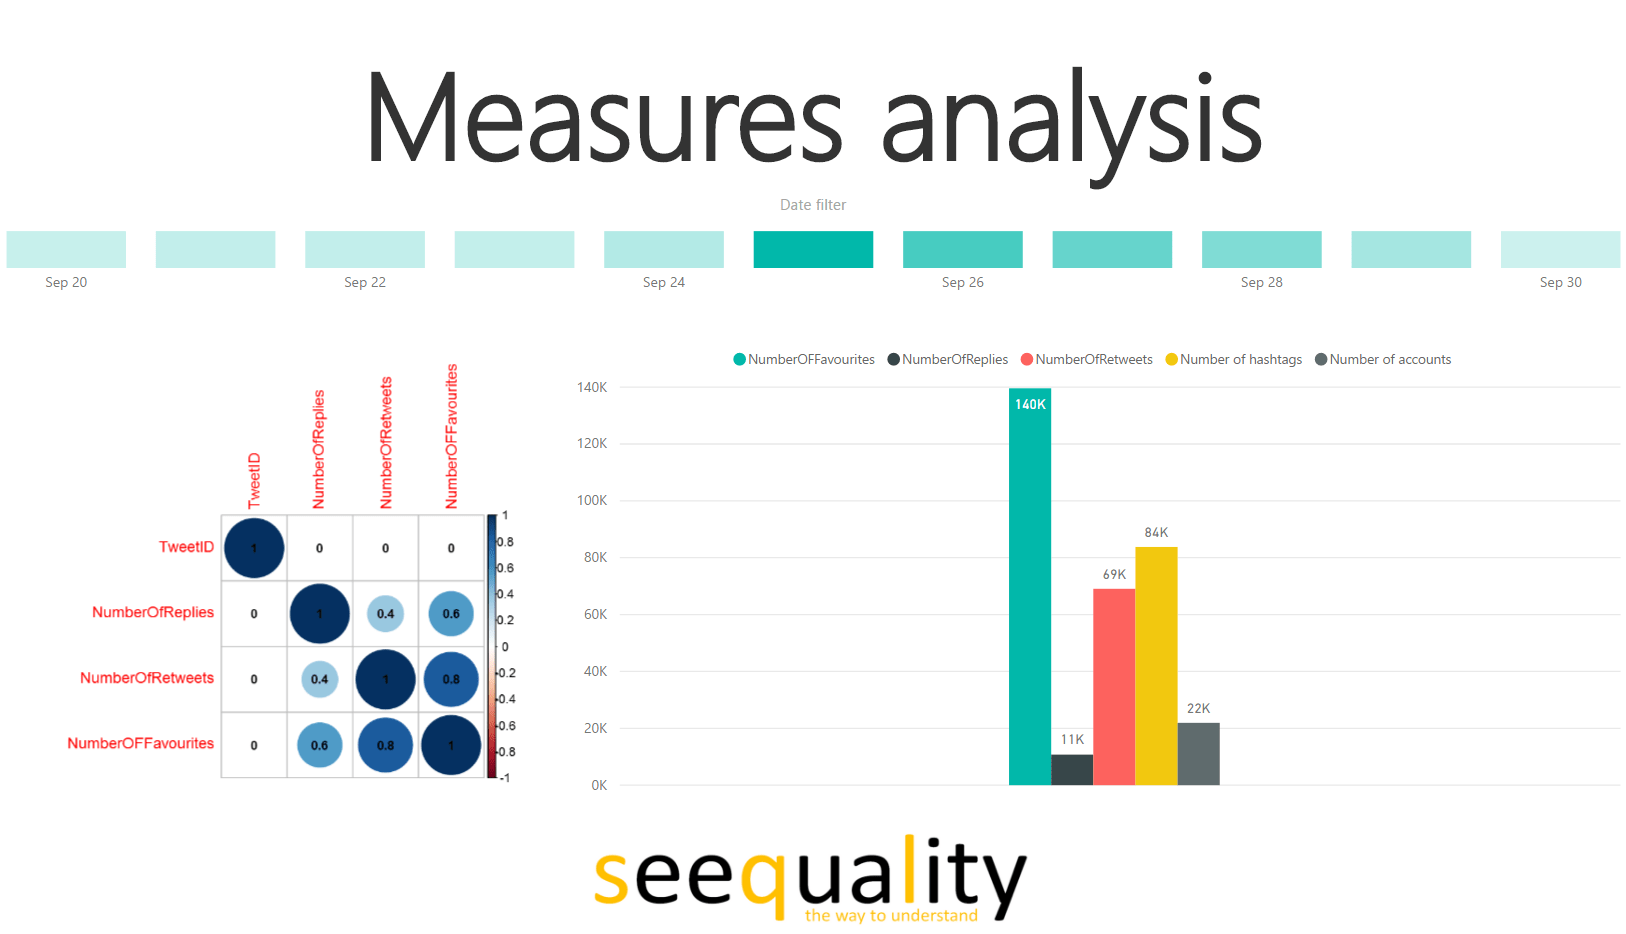 Power BI #msignite twitter analysis measure analysis